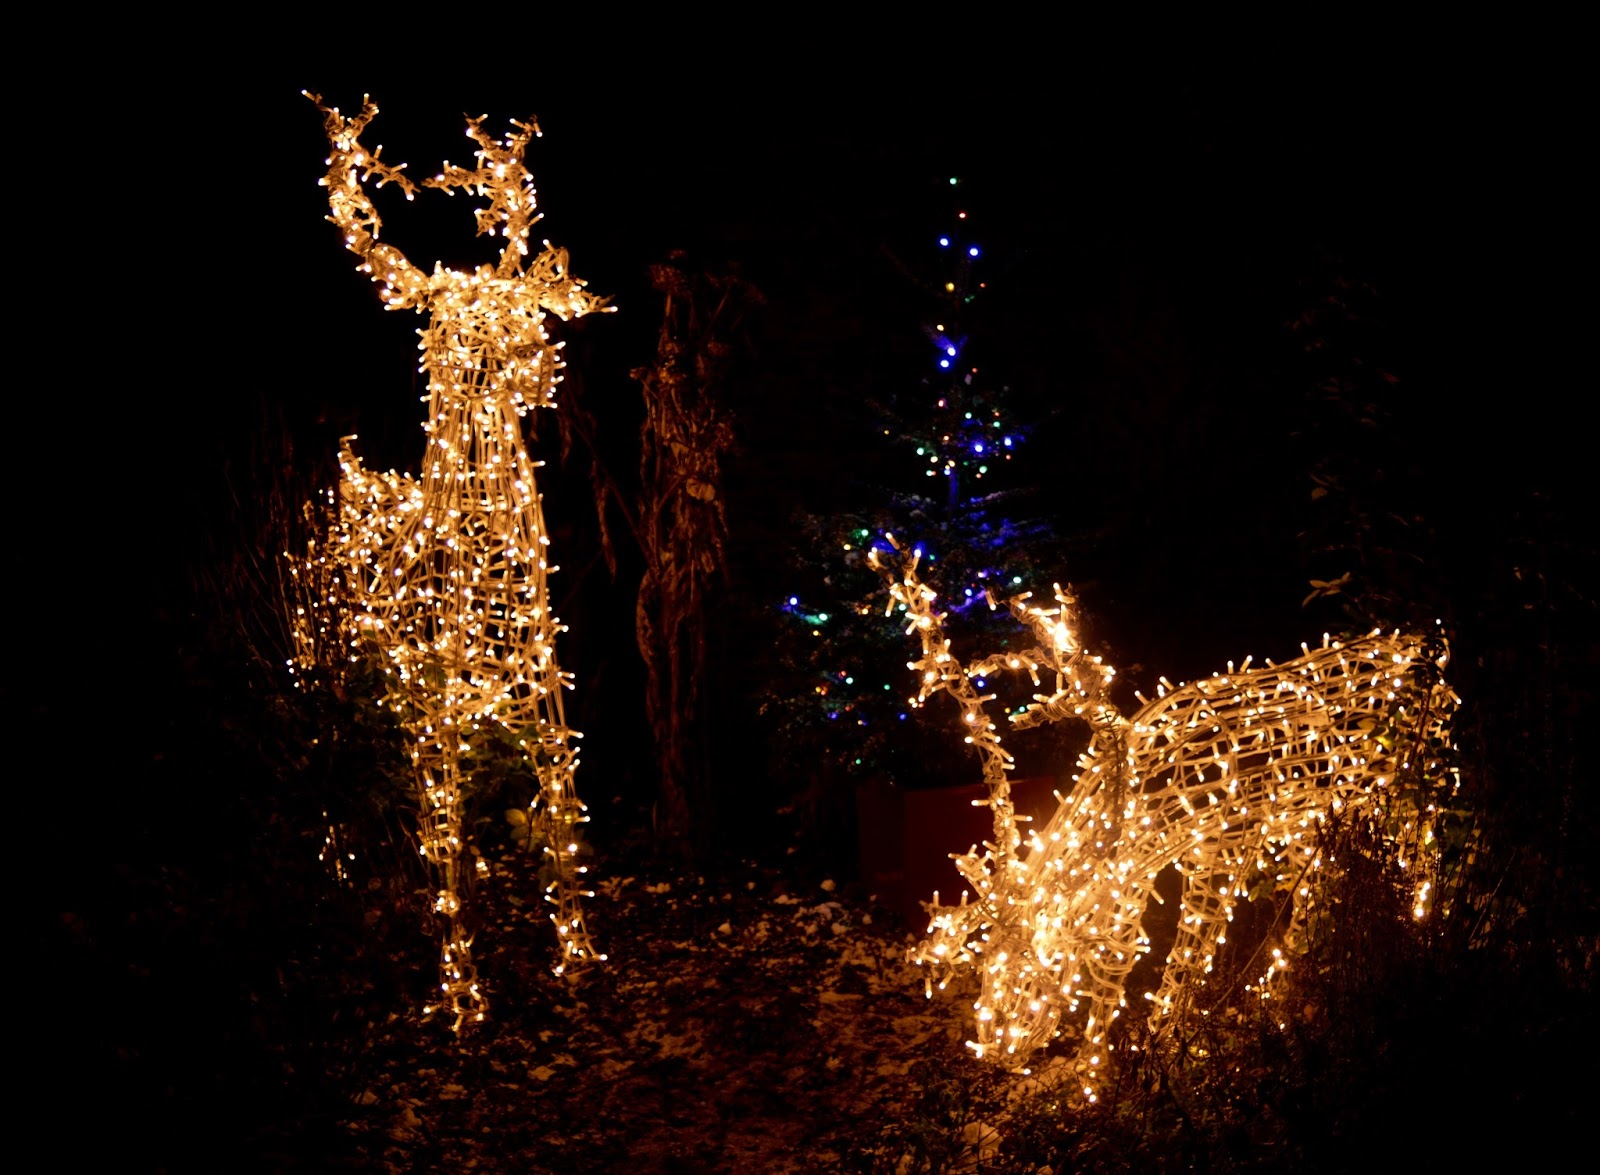 Winter Wonderland Christmas Light Show | A Wynyard Hall Garden Event - A Review - illuminated reindeer